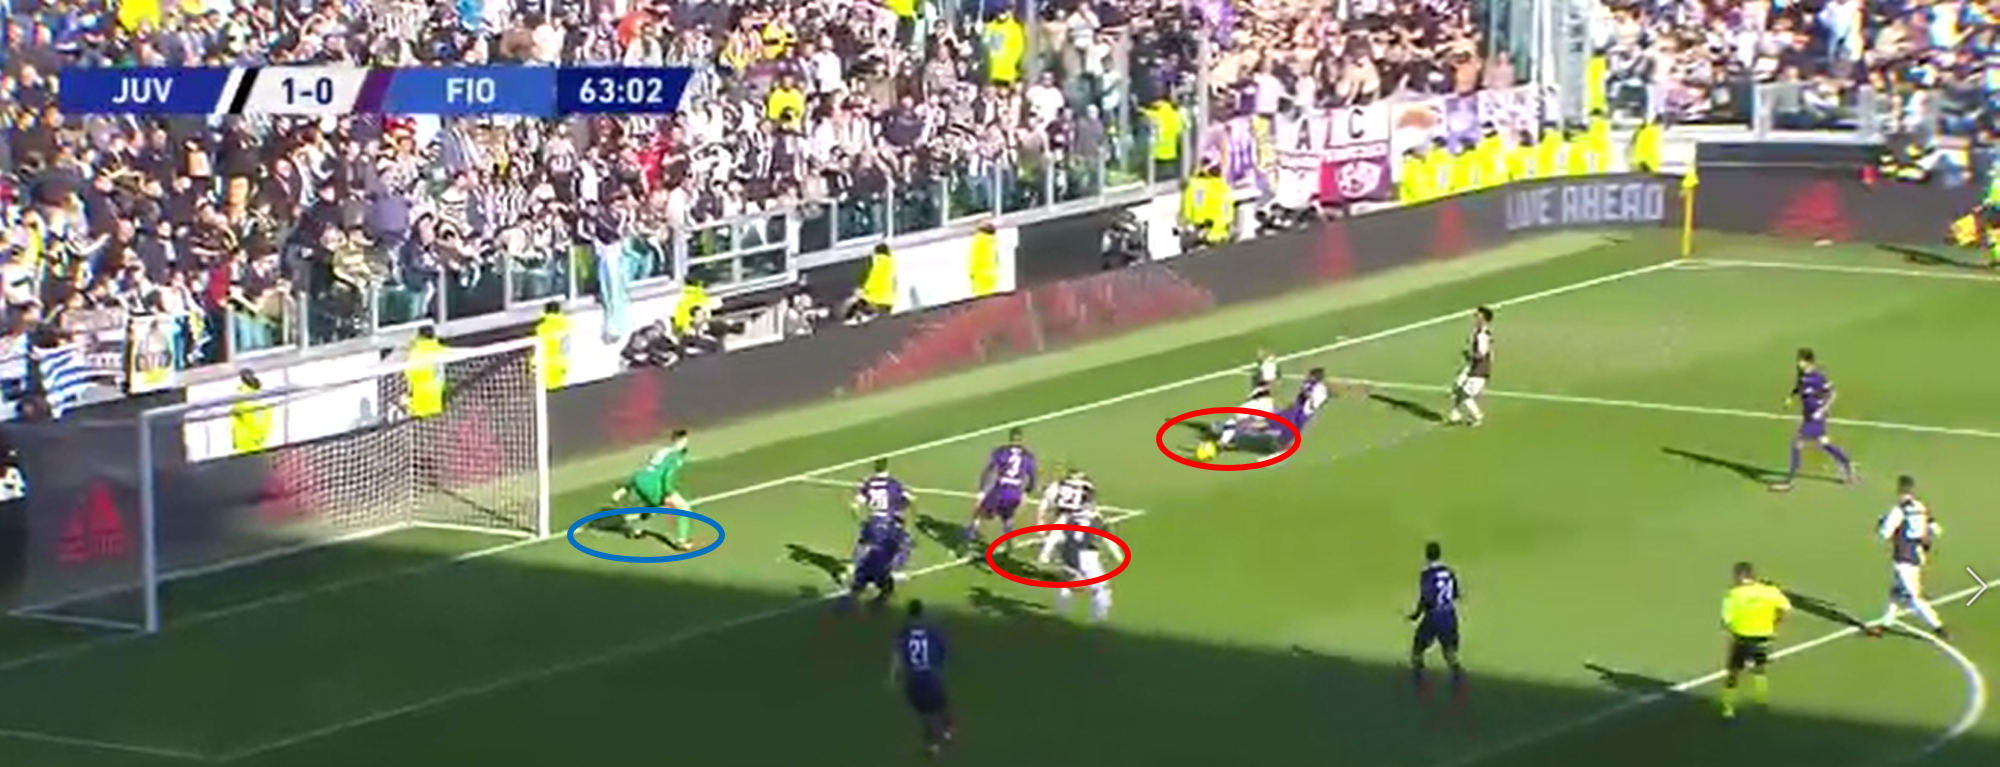 Serie A 2019/20: Juventus vs Fiorentina – tactical analysis tactics